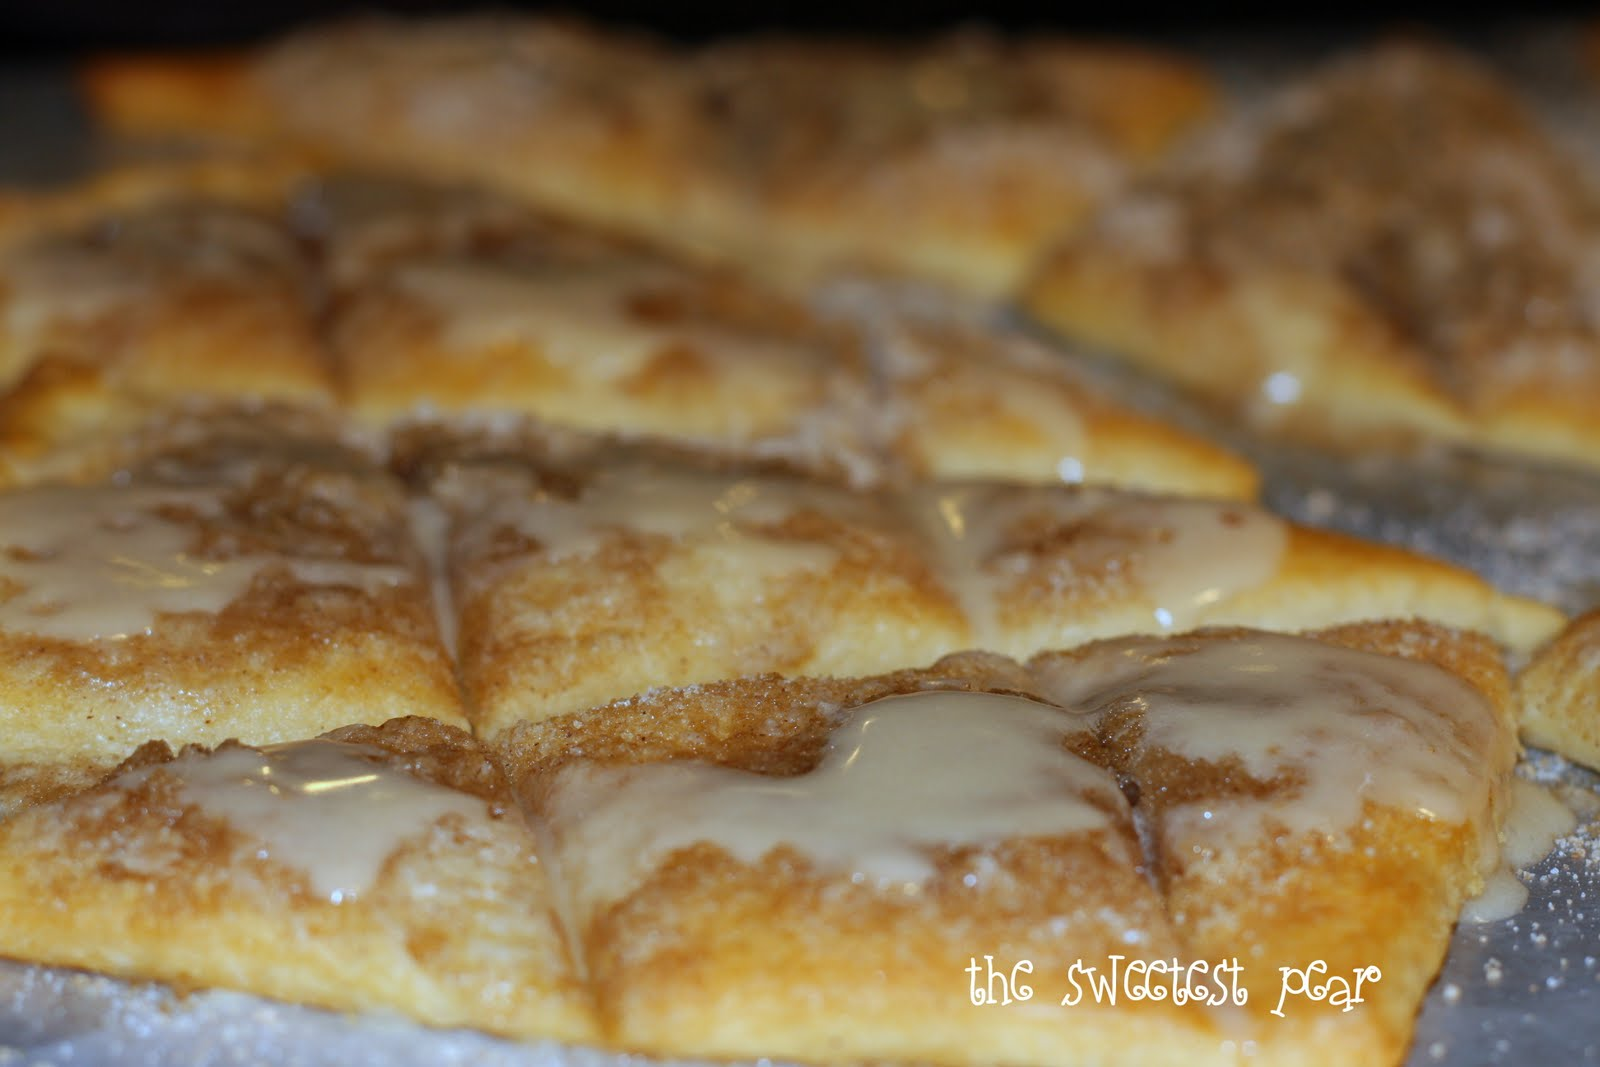 The Sweetest Pear: Cinnamon-Sugar Pizza